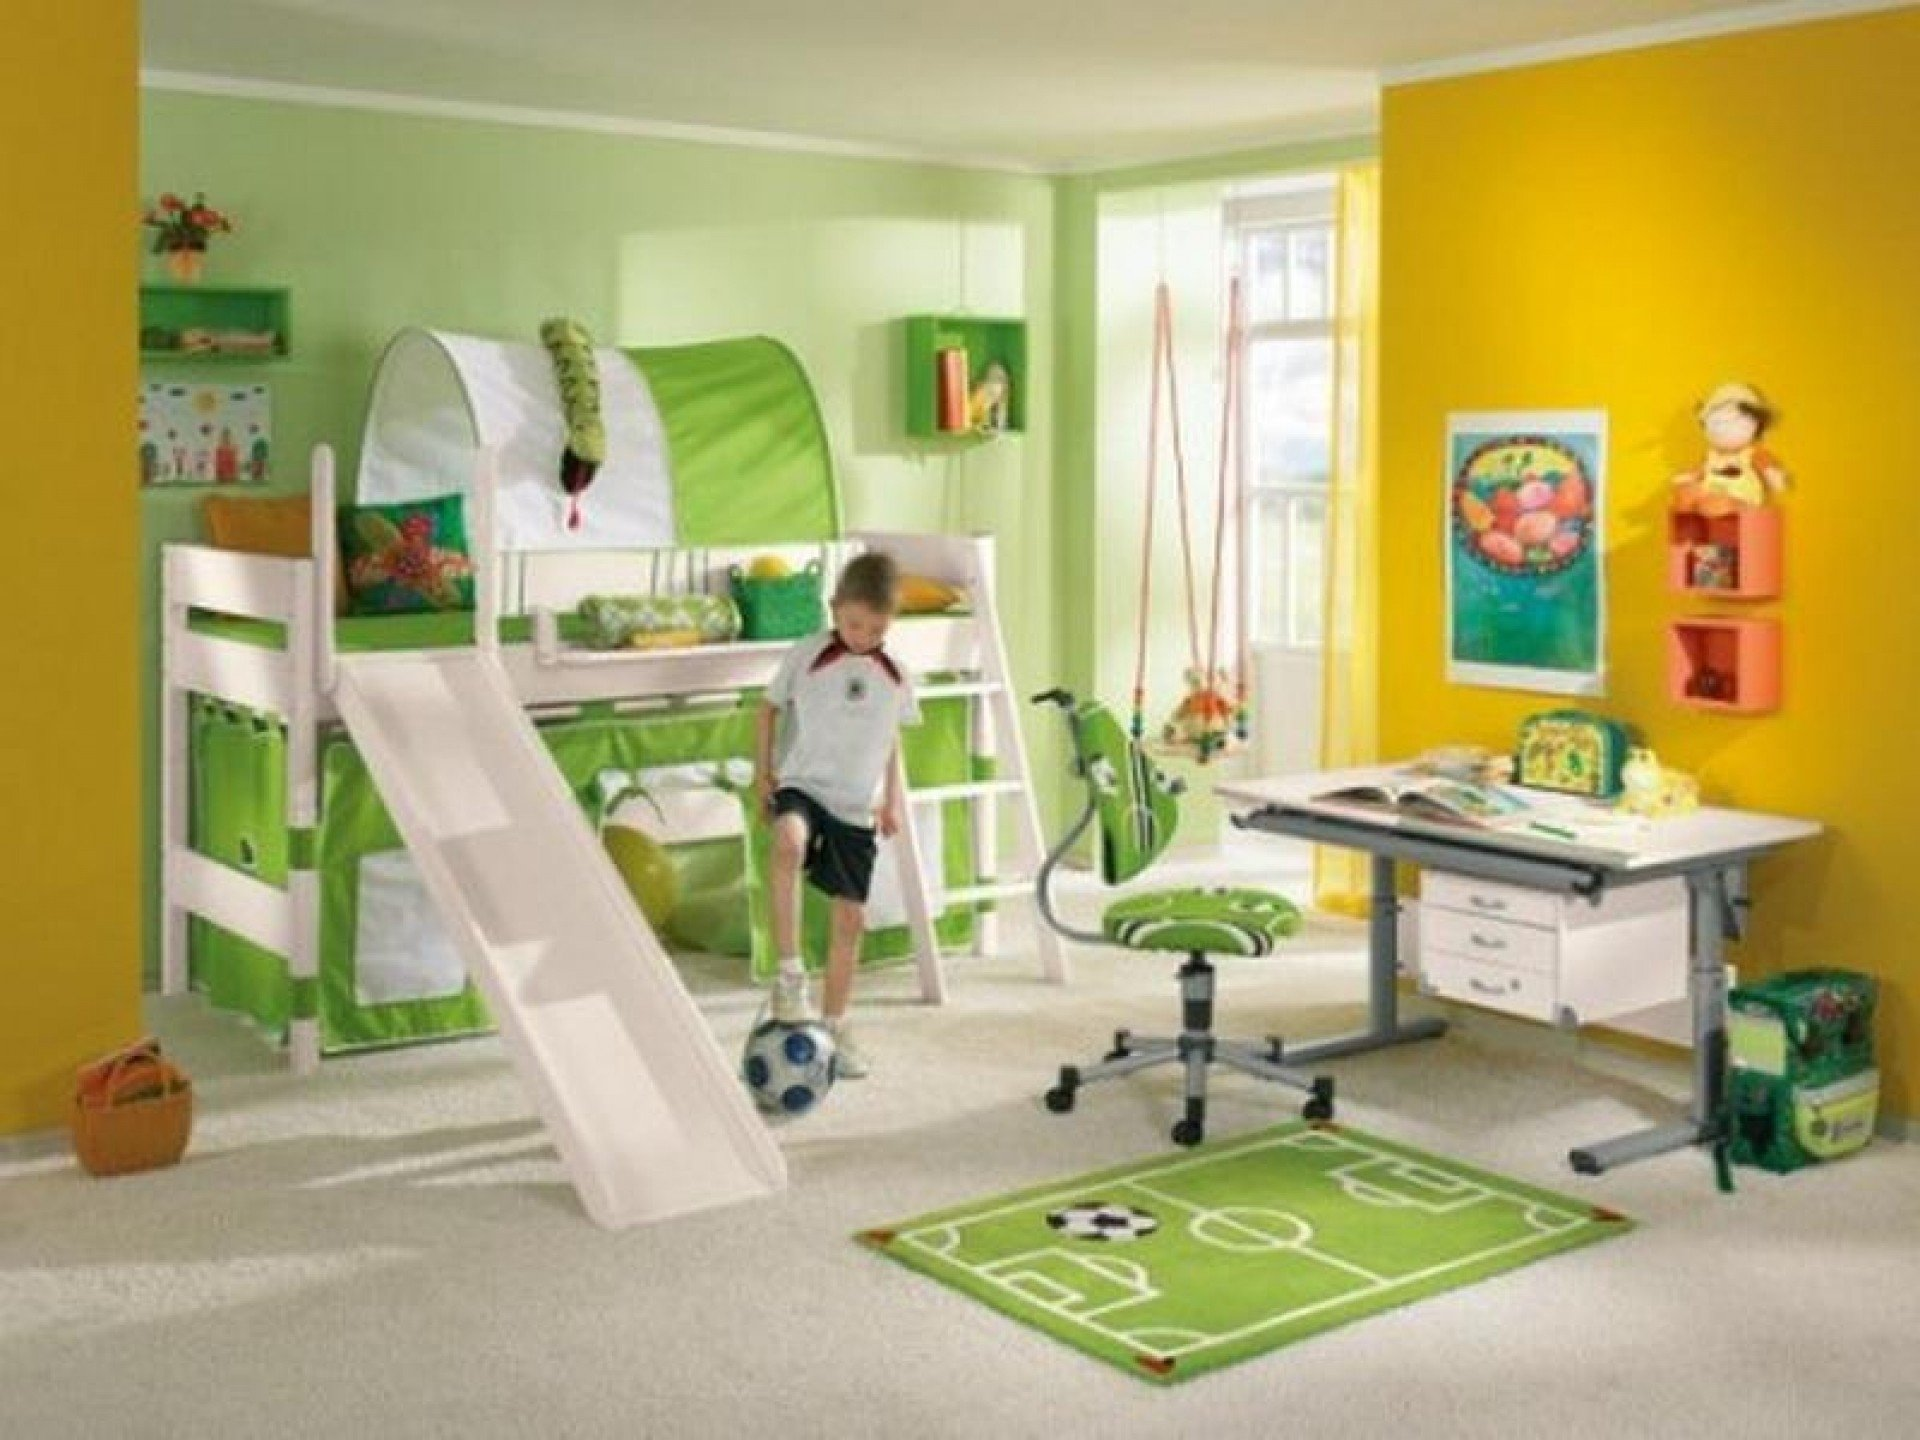 10 Unique Kids Bedroom Ideas For Small Rooms kids design modern small room ideas for boys toddler kid bedroom a 2020